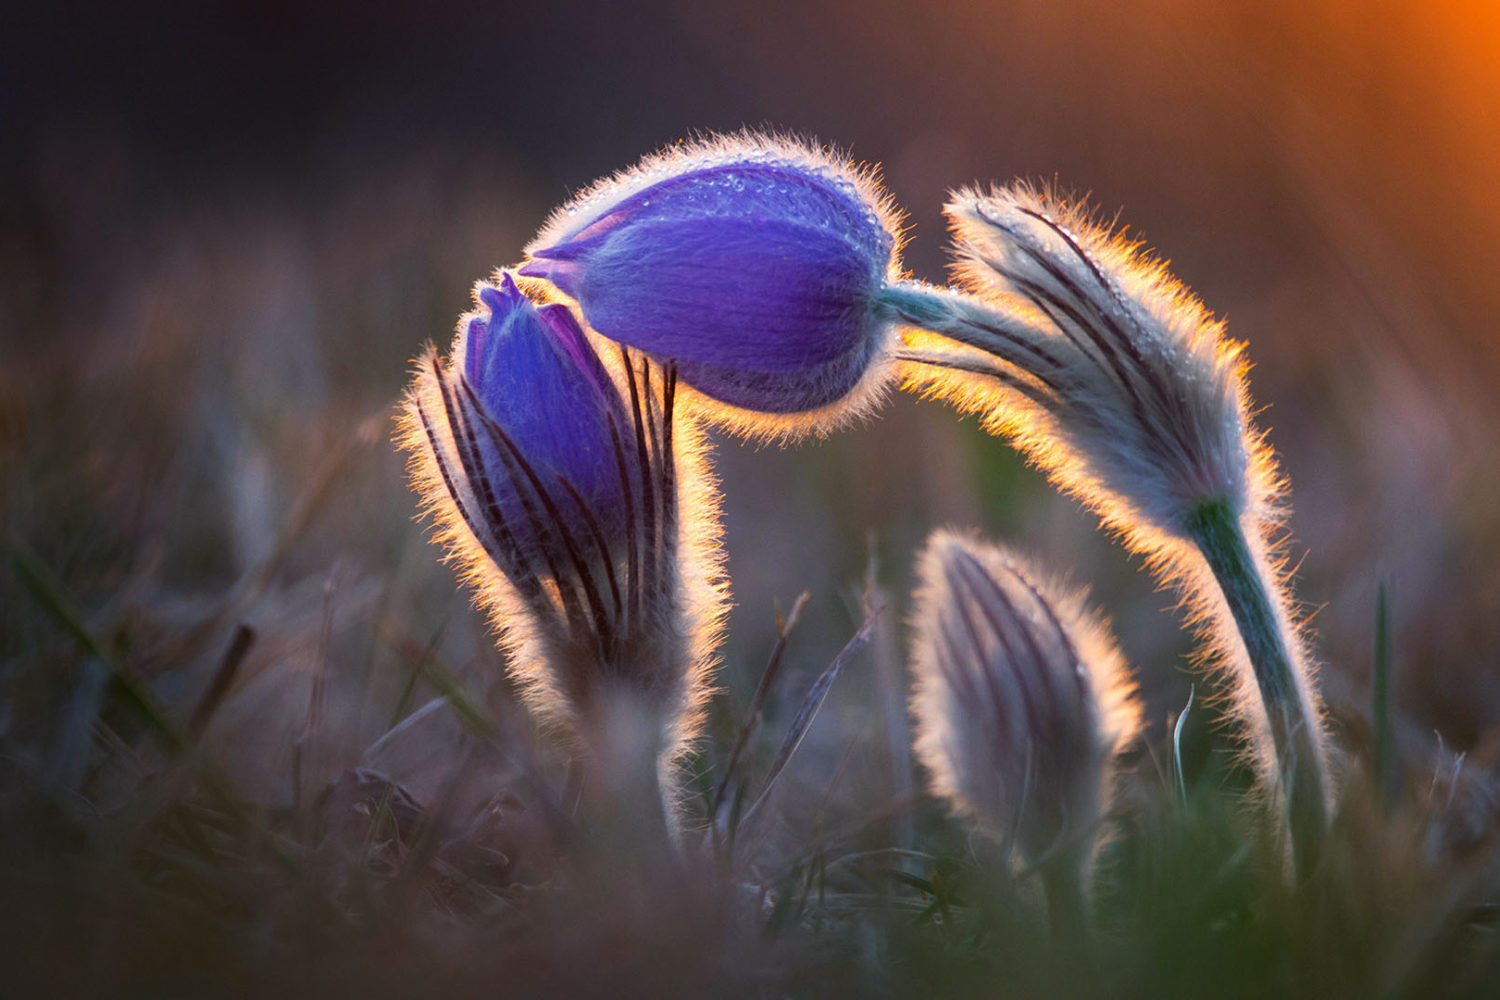 9 winning photos that perfectly combine light and nature